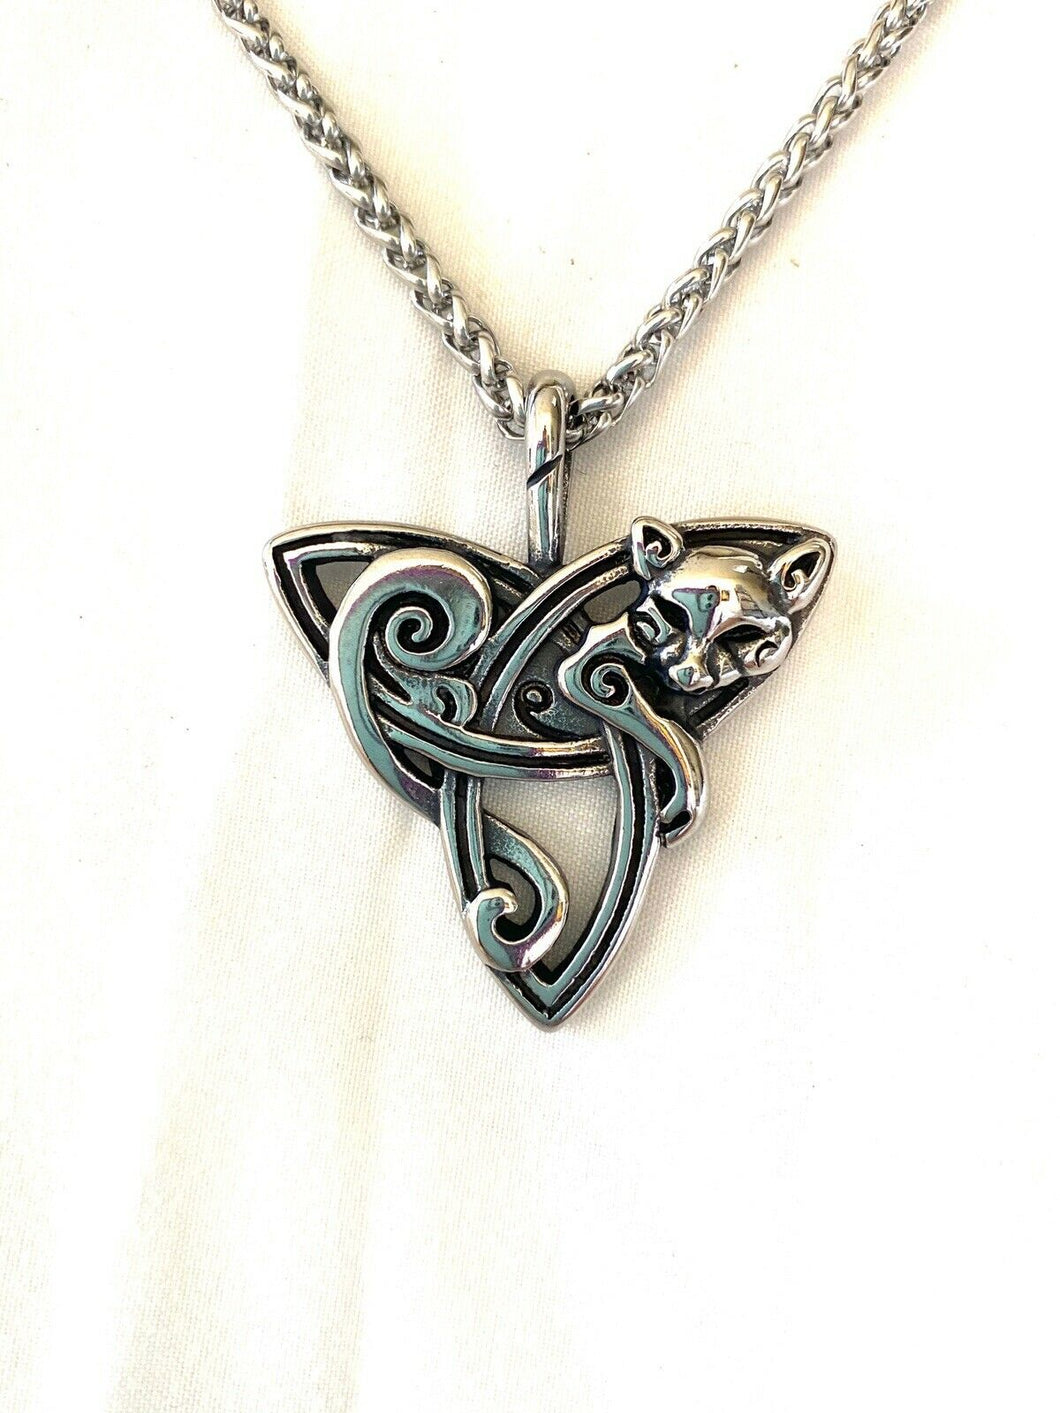 Large 316L Stainless Steel Irish Celtic Trinity Knot W/ Fox Pendant FREE Chain